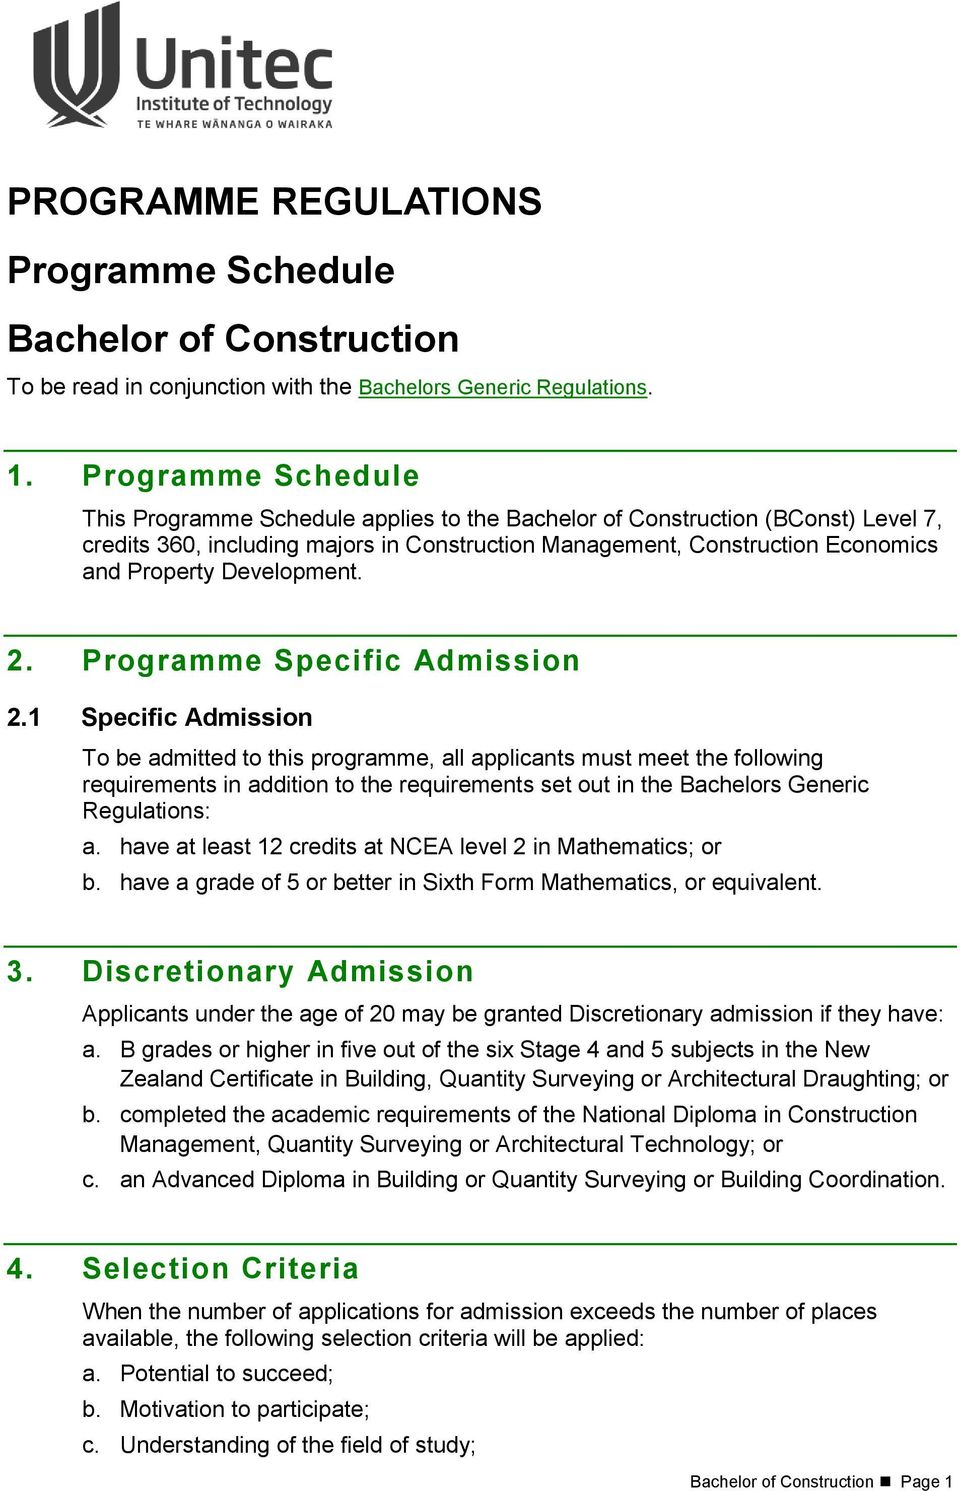 programme regulations programme schedule bachelor of construction - pdf